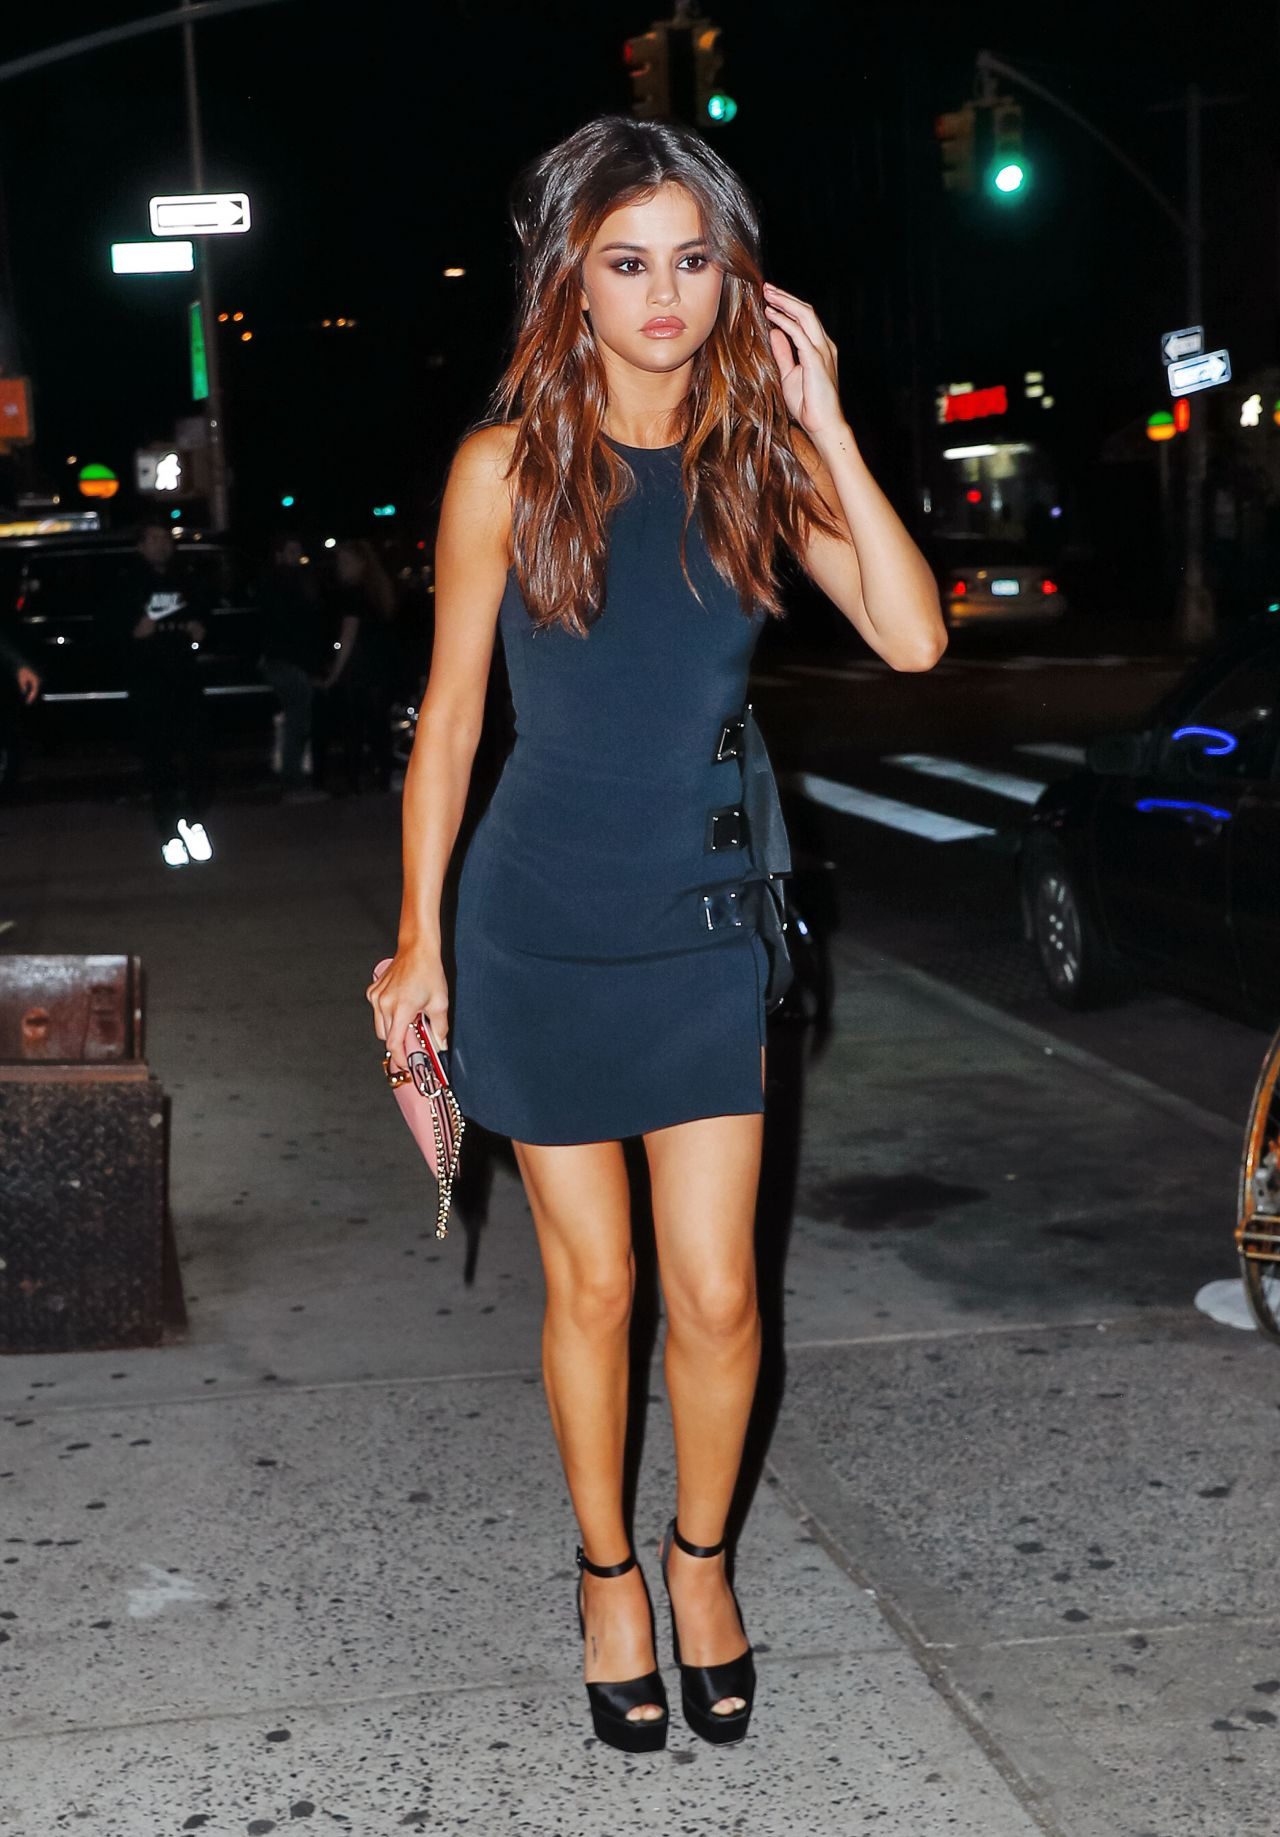 Selena Gomez night out in NYC. Drop dead gorgeous, amazing legs!